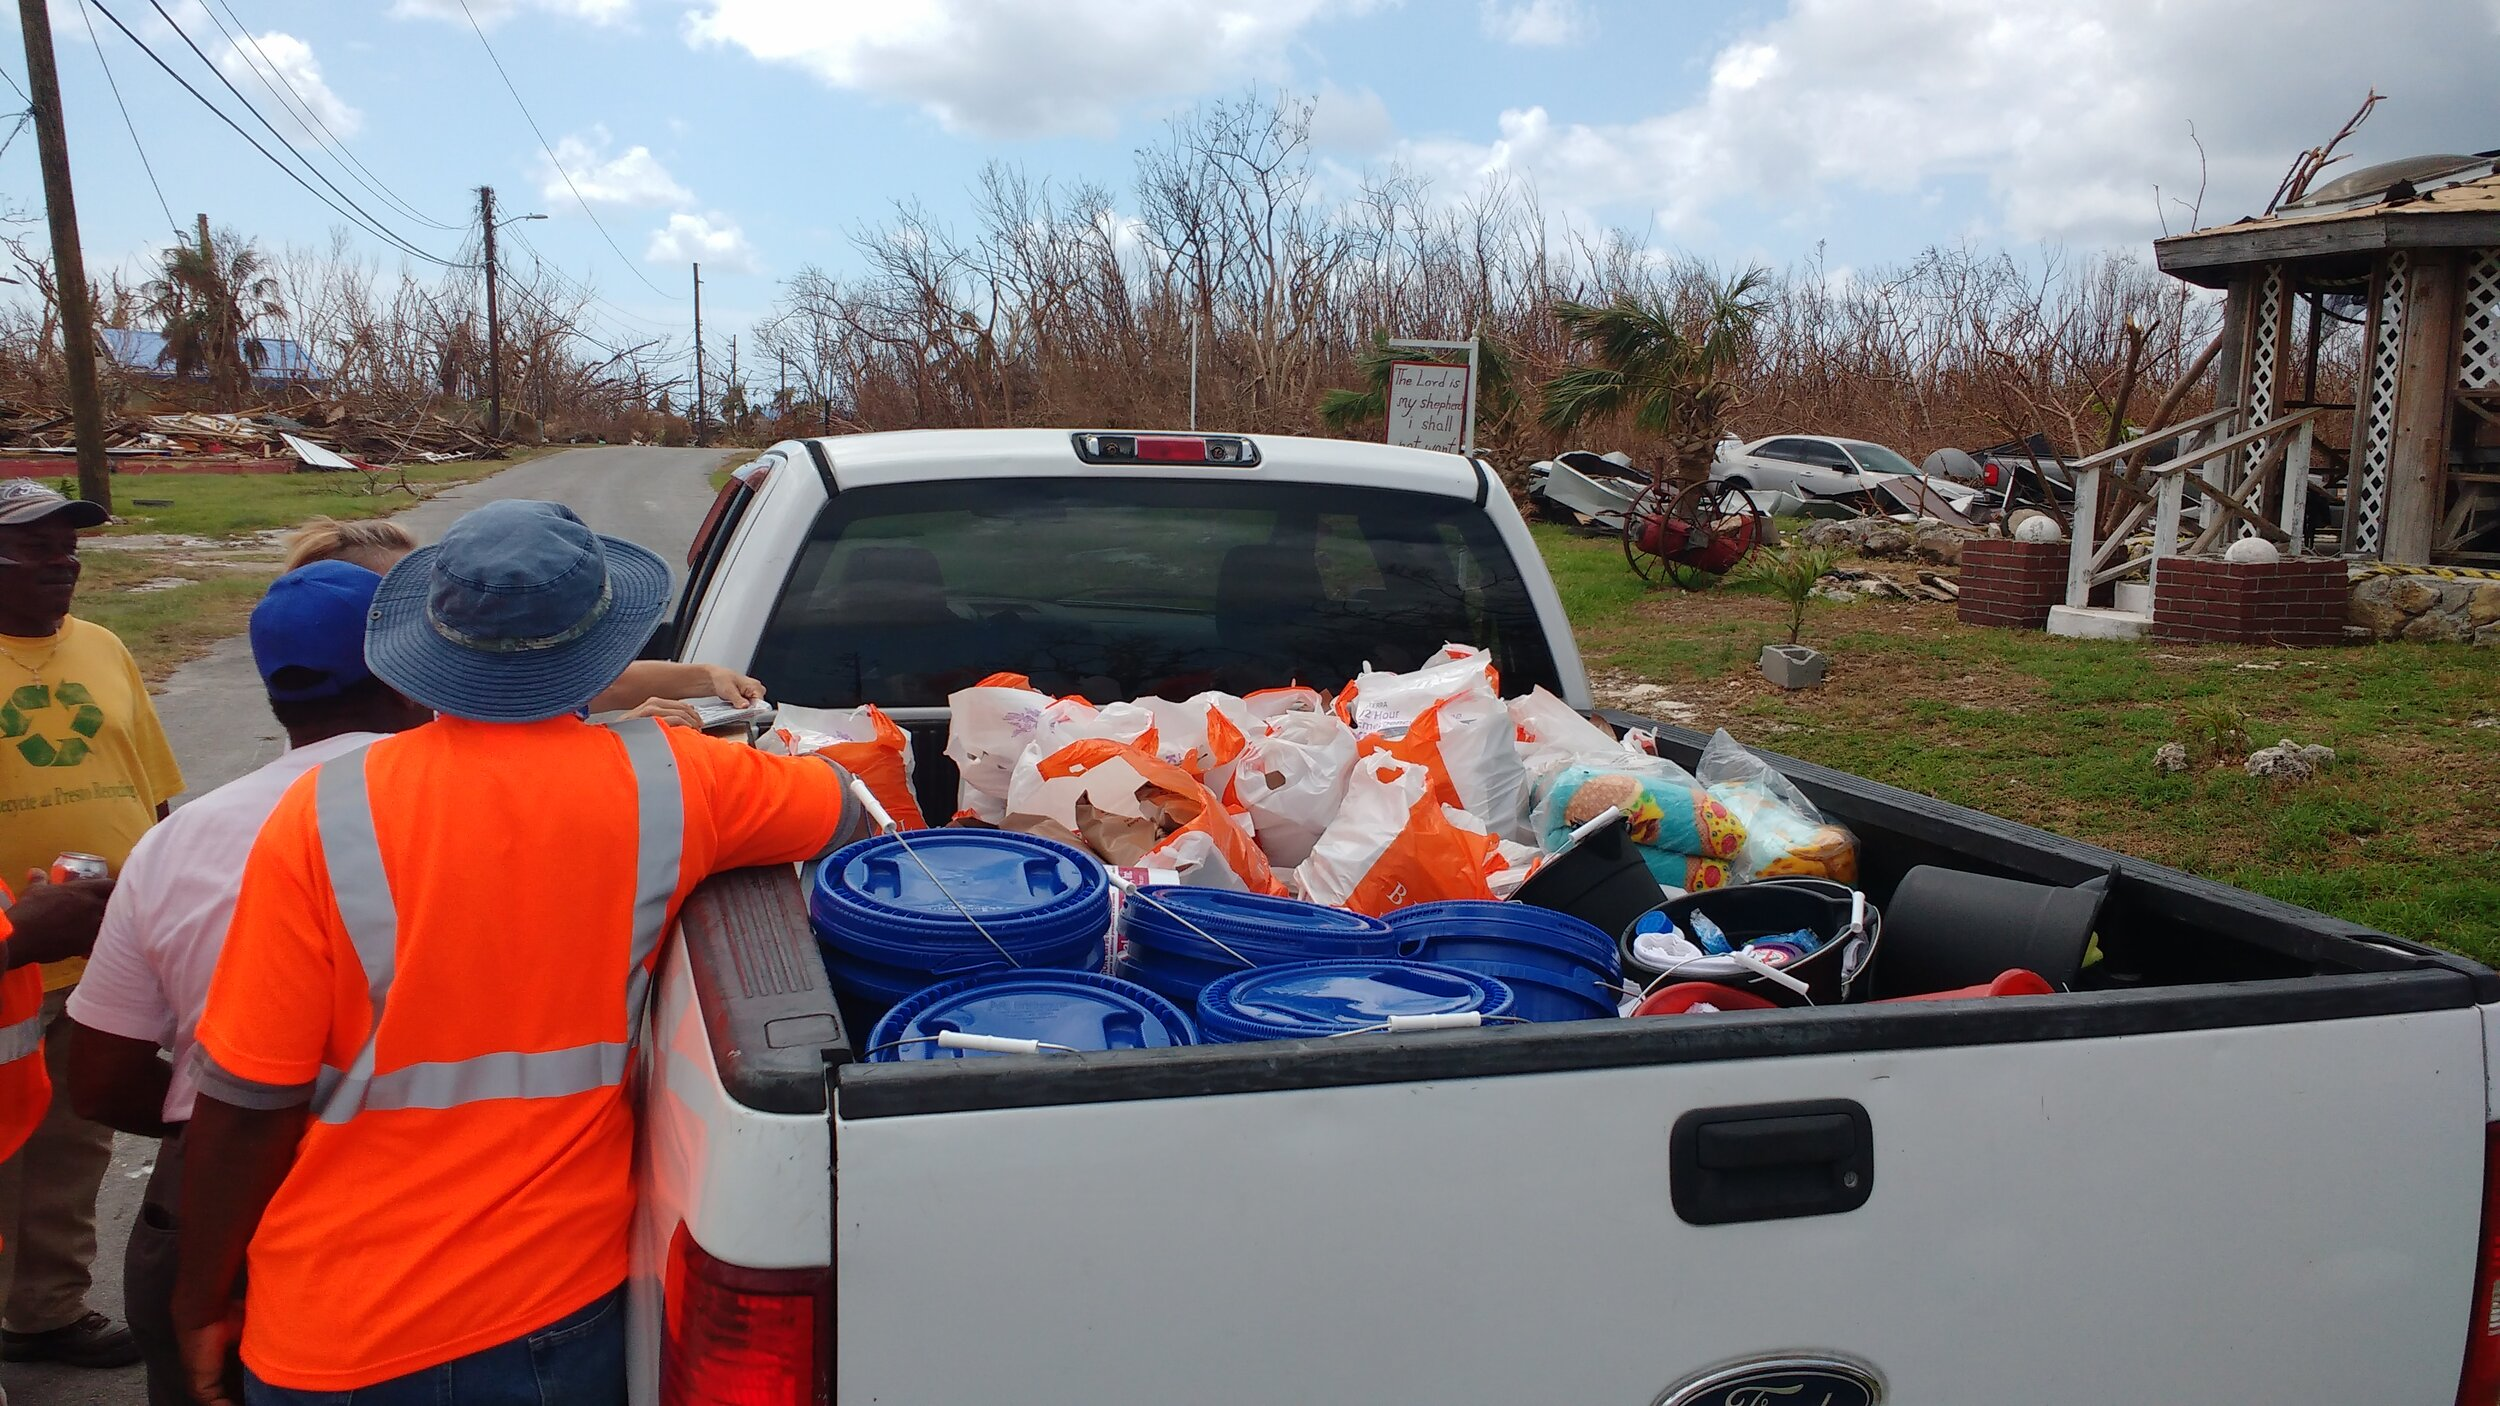 Delivering supplies to needy families in High Rock